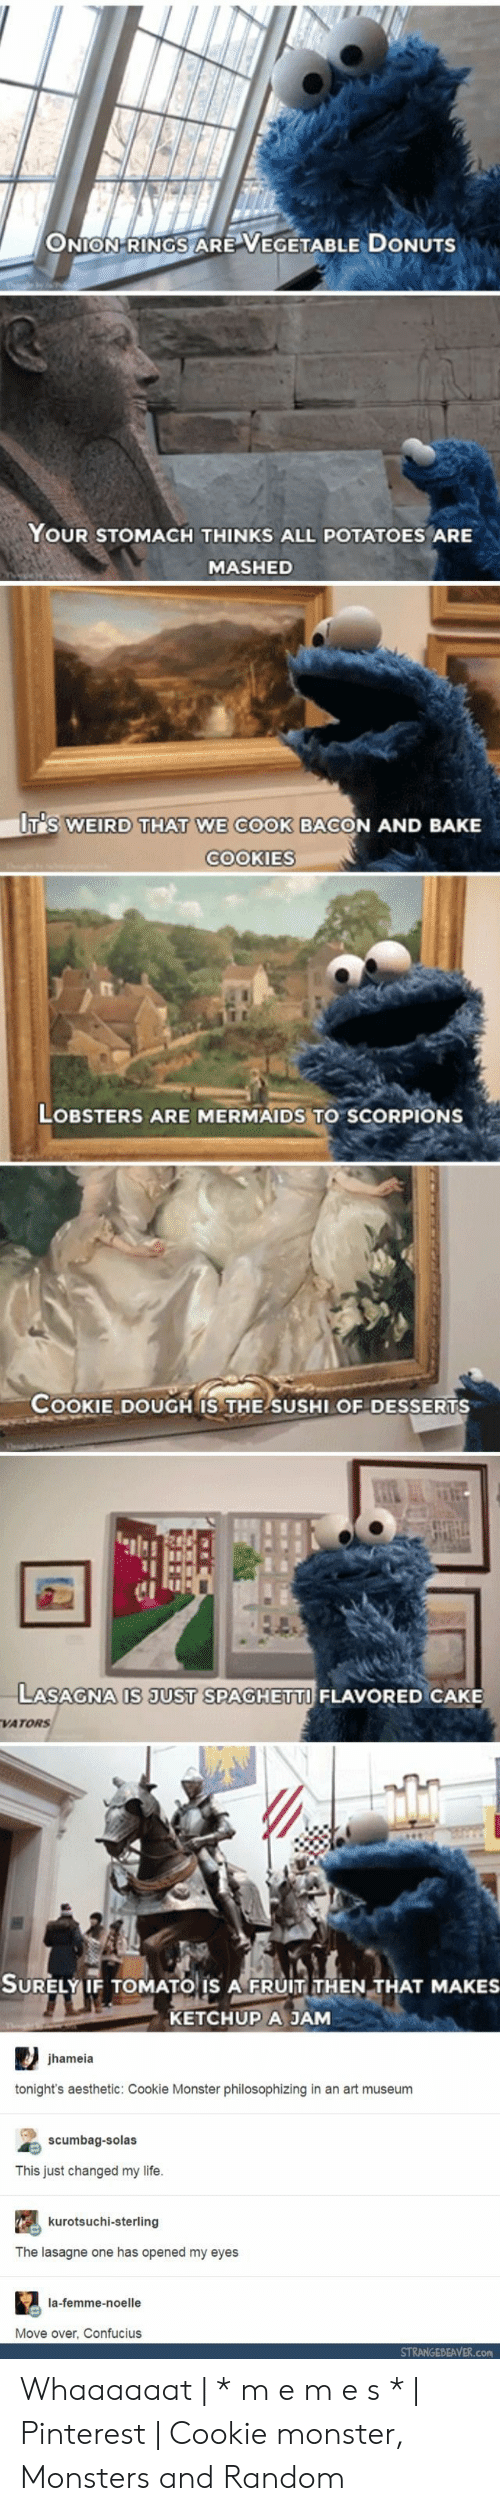 Cookie Monster, Cookies, and Life: ONION-RINGS ARE VEGETABLE DONUTS  YOUR STOMACH THINKS ALL POTATOES ARE  MASHED  UT'S WEIRD THAT WE COOK BACON AND BAKE  COOKIES  LOBSTERS ARE MERMAIDS TO SCORPIONS  COOKIE DOUGH IS THE SUSHI OF DESSERTS  1I  C1  LASAGNA IS JUST SPAGHETTI FLAVORED CAKE  VATORS  SURELY IF TOMATO IS A FRUIT THEN THAT MAKES  KETCHUP A JAM  SURELYIF TOMATO IS A FRUIT THEN THAT MAKES  jhameia  tonight's aesthetic: Cookie Monster philosophizing in an art museum  scumbag-solas  This just changed my life  kurotsuchi-sterling  The lasagne one has opened my eyes  la-femme-noelle  Move over, Confucius  STRANGEBEAVER.con Whaaaaaat | * m e m e s * | Pinterest | Cookie monster, Monsters and Random